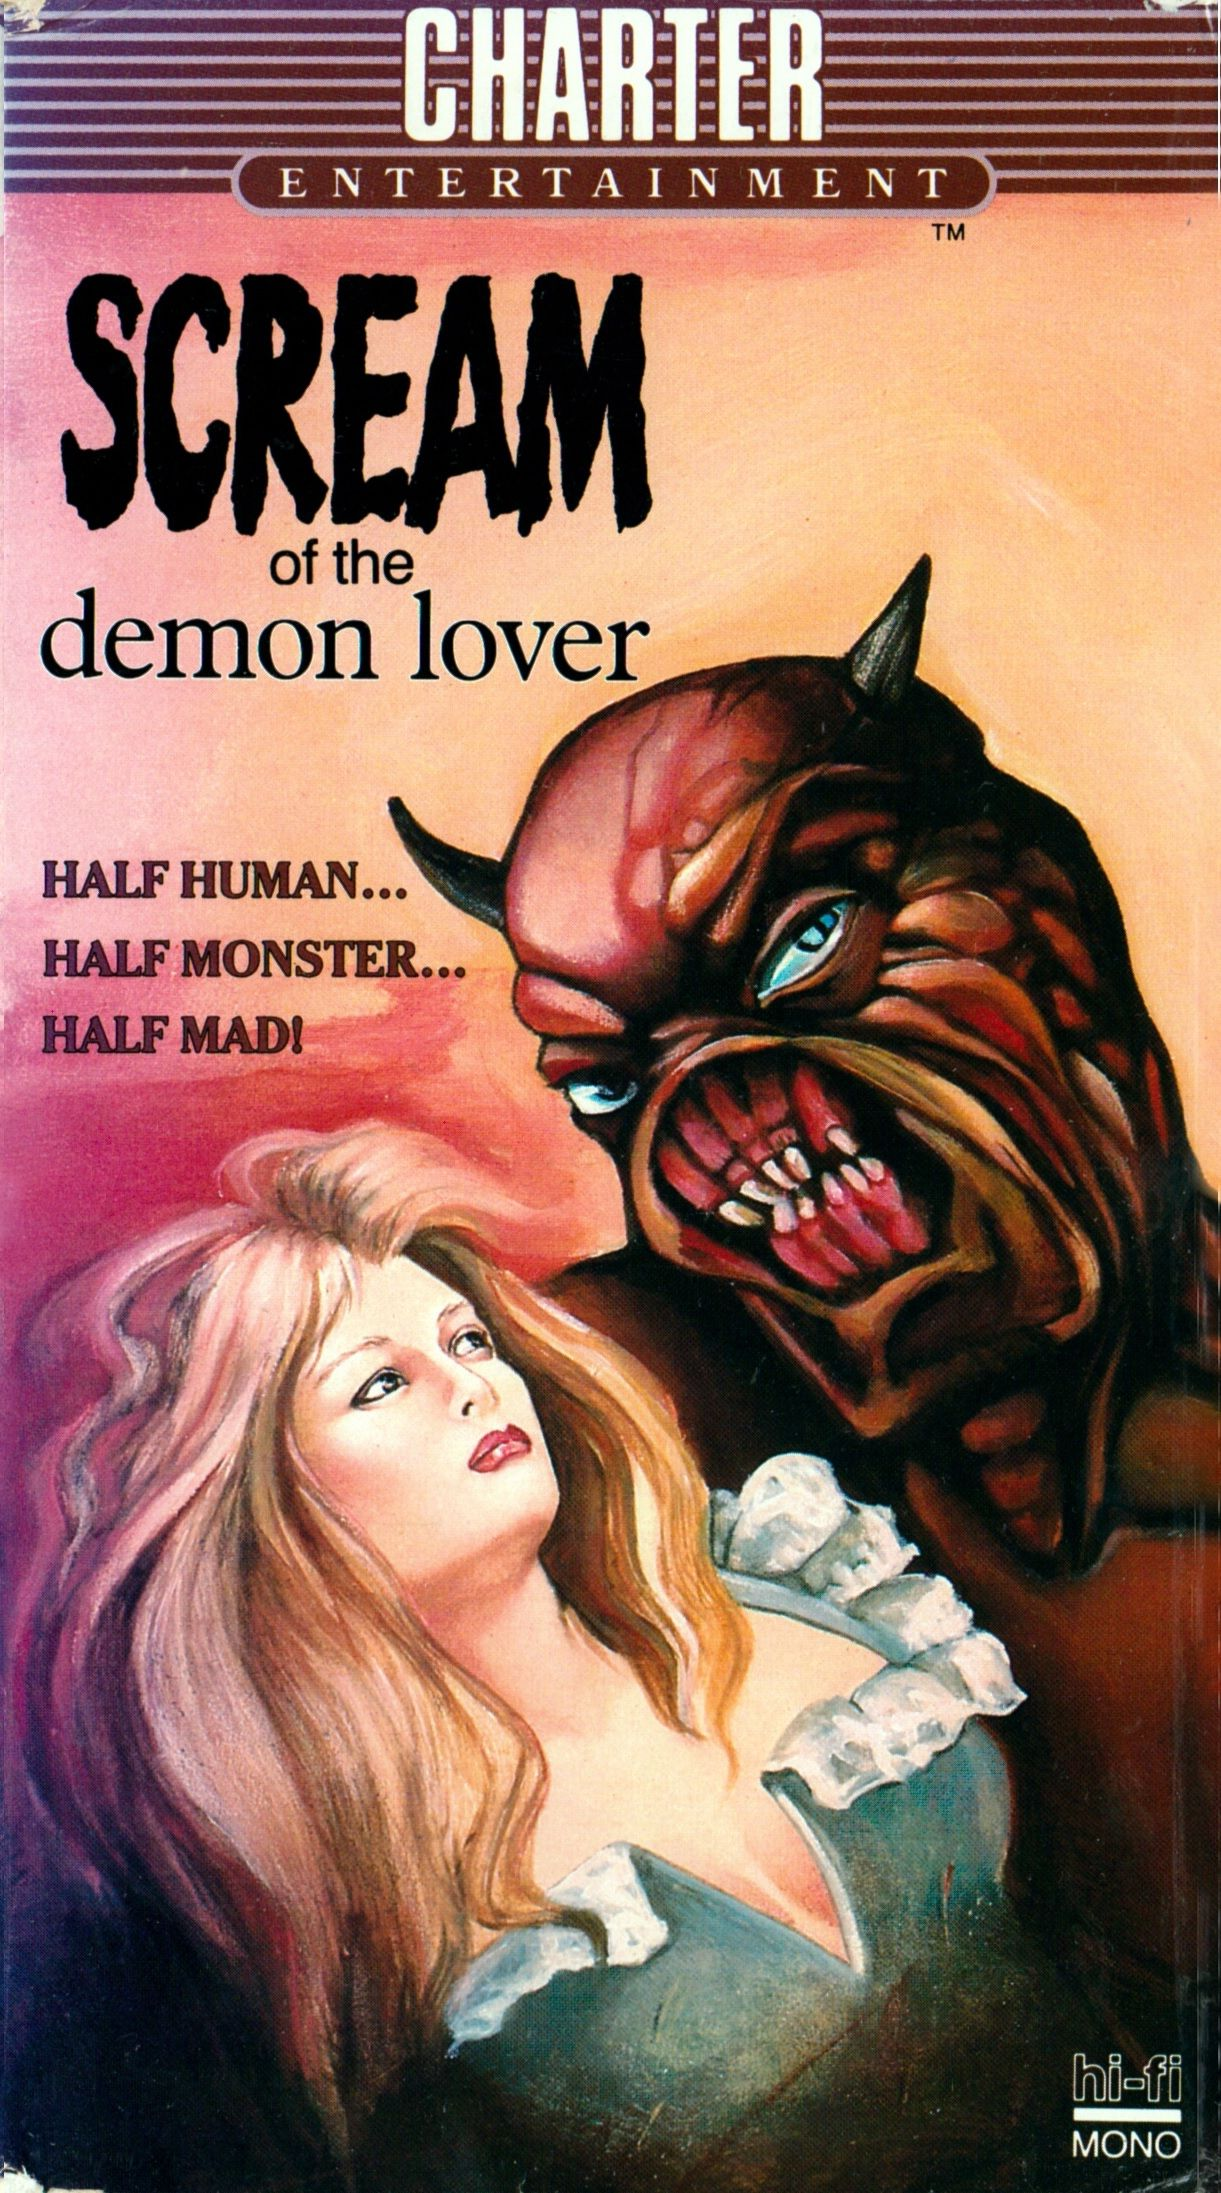 Scream of the Demon Lover (vhs) | The Wonderful World of ...